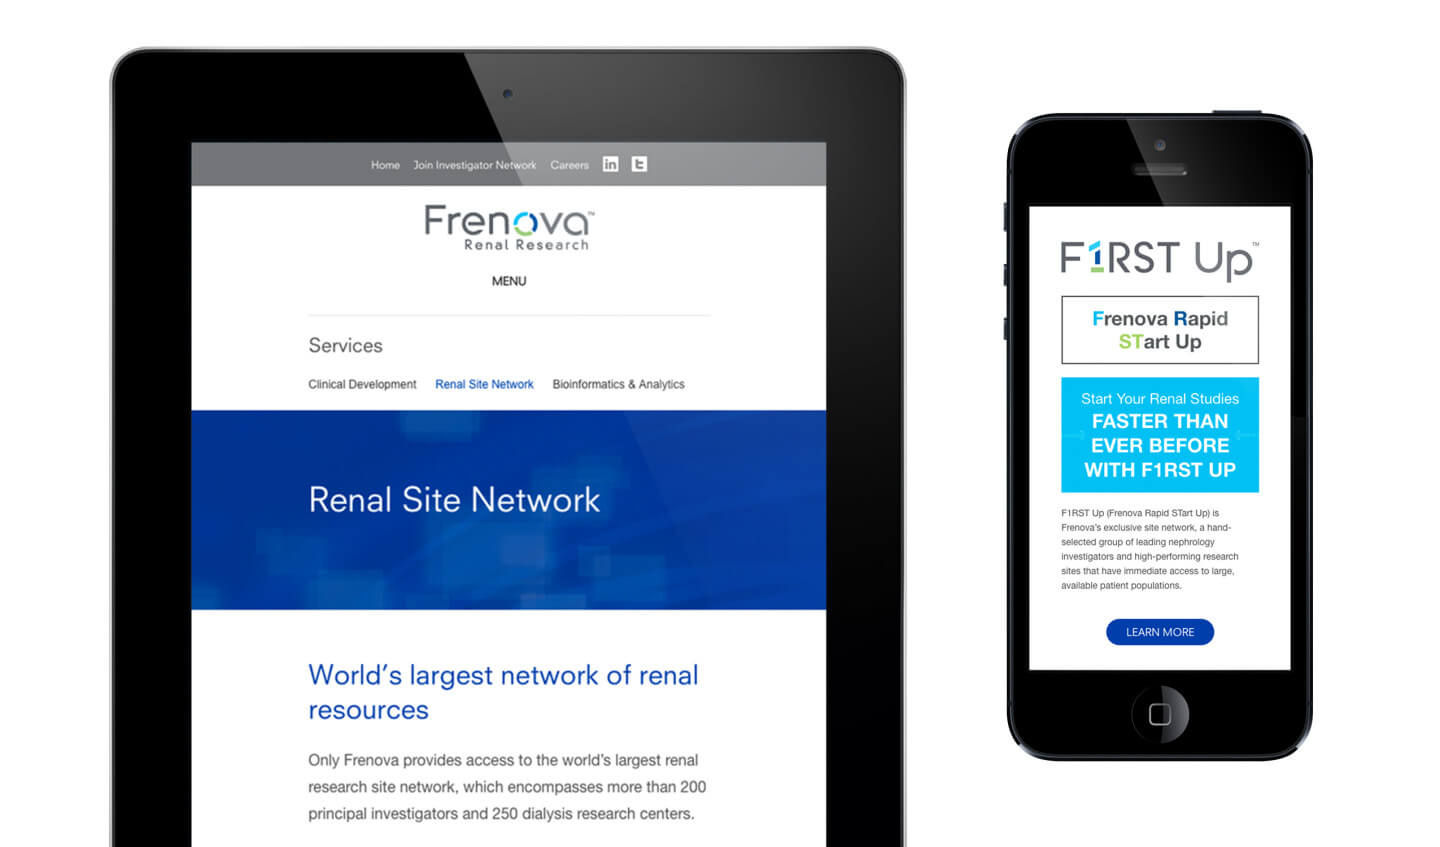 Frenvoa website